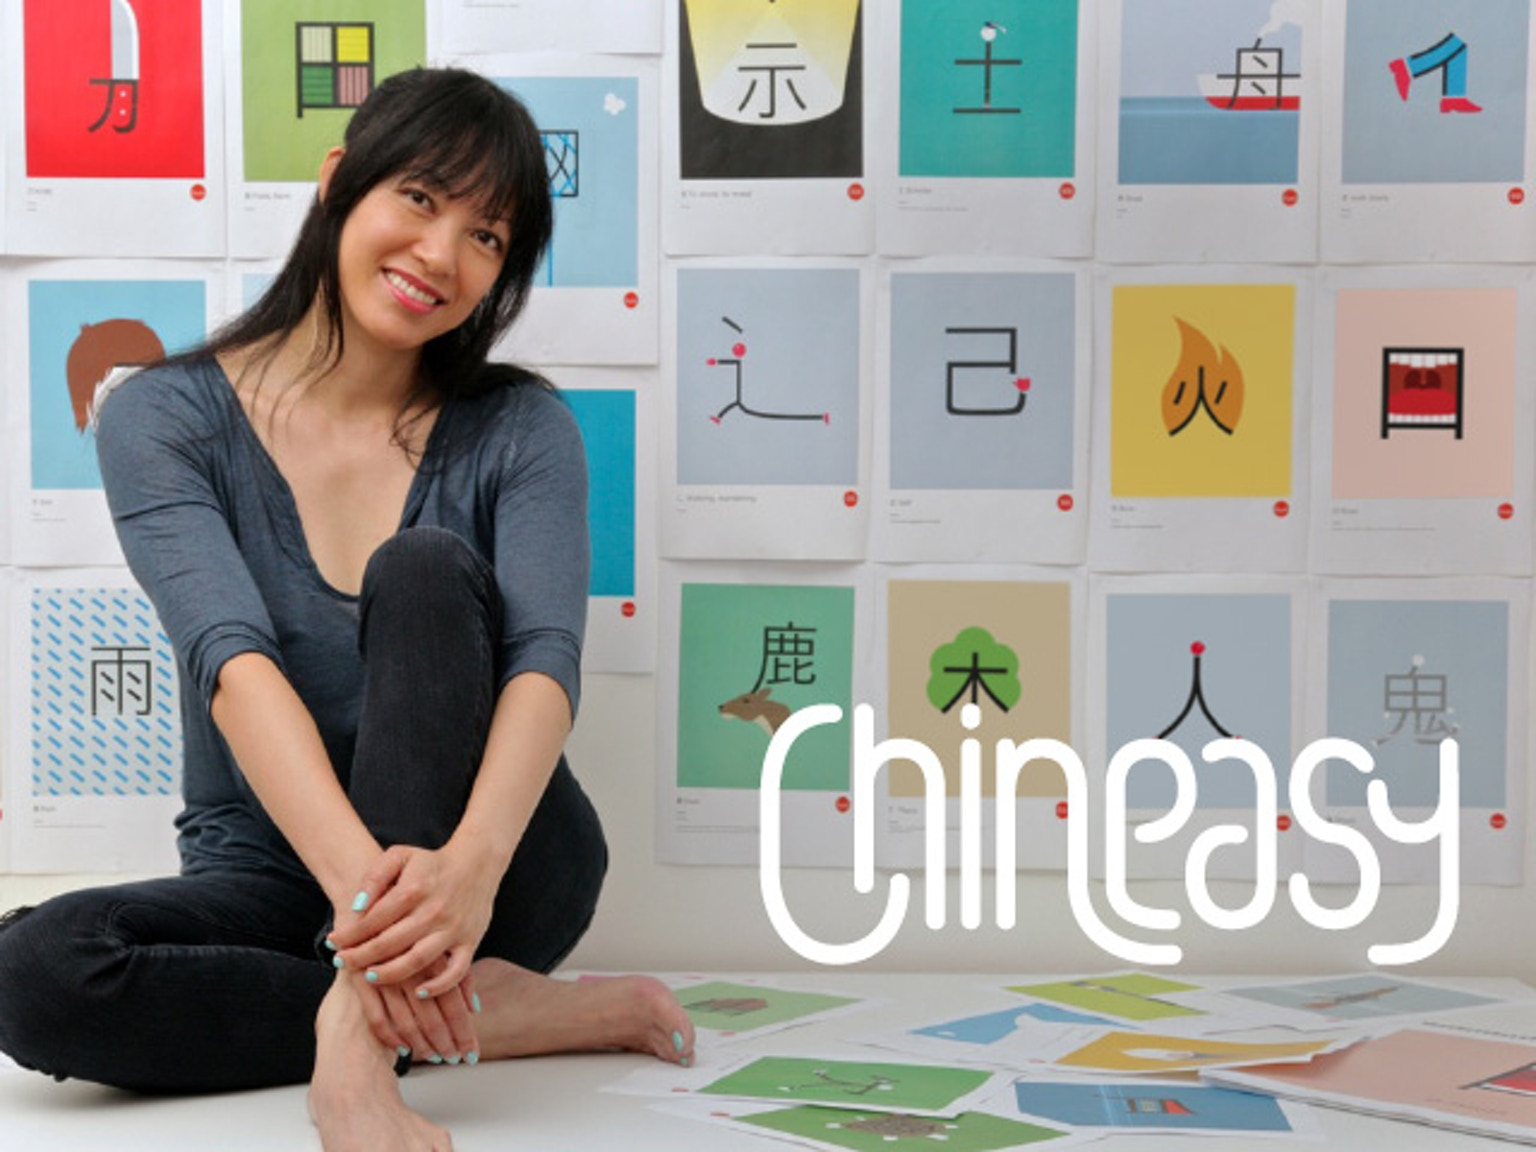 Chineasy: The New Way to Read Chinese by ShaoLan Hsueh ...